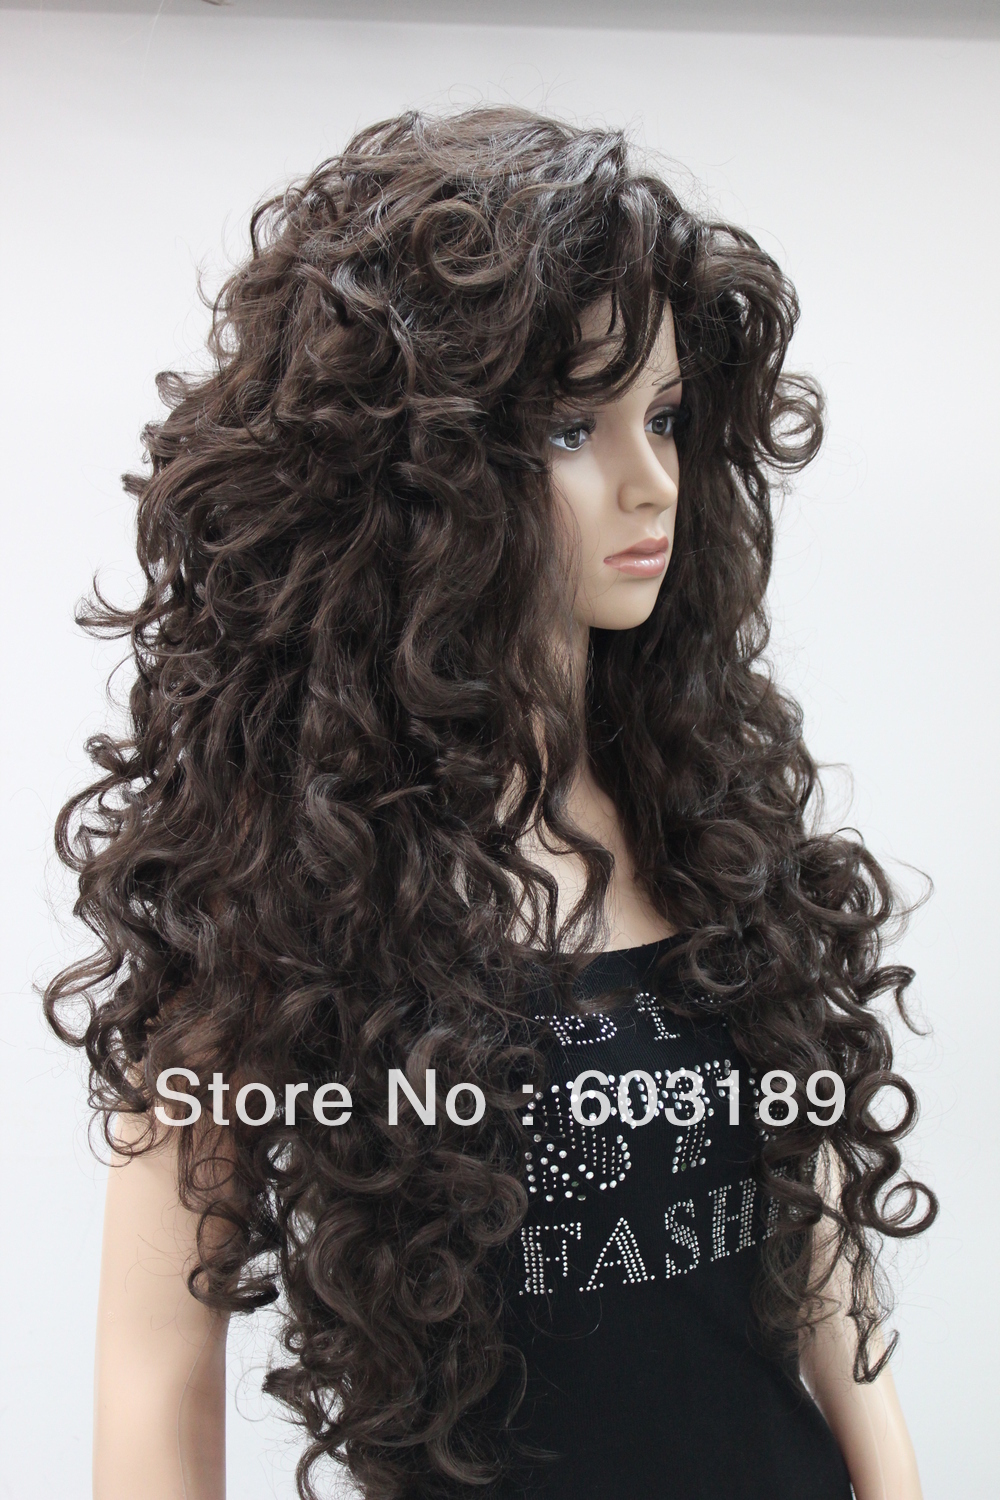 2013 New Fashion Cosplay Dark Brown Long Curly Wig/30 inch Synthetic Hiar Women's Wigs - Hivision wig store